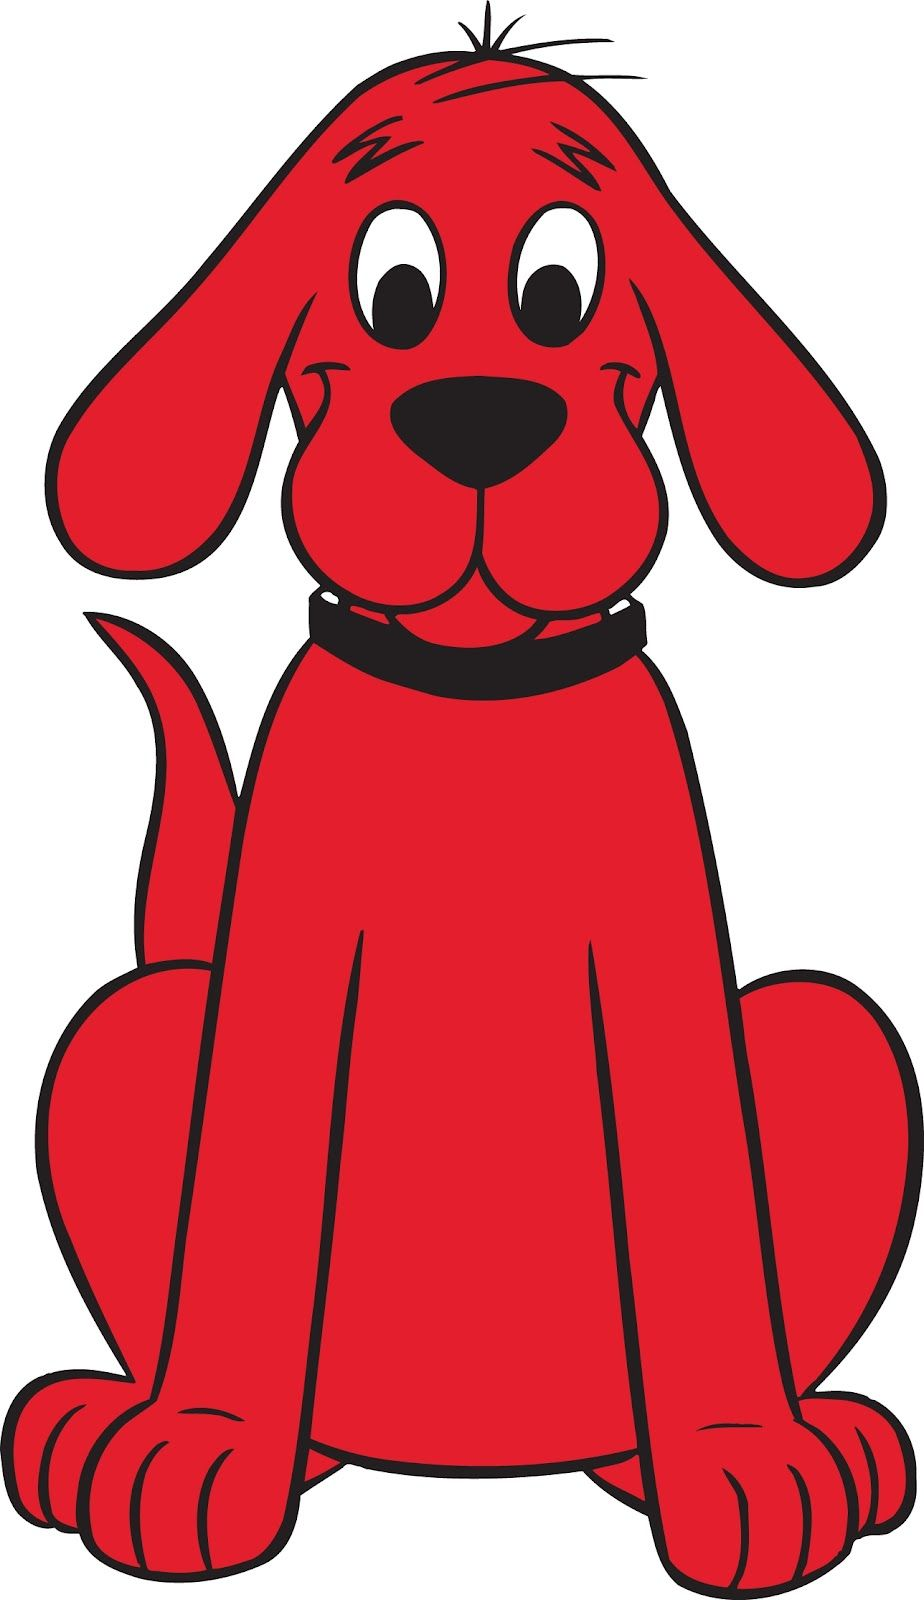 clifford clip art for kids pinterest red dog dogs and red rh pinterest com Blue's Clues Clip Art clifford clipart free